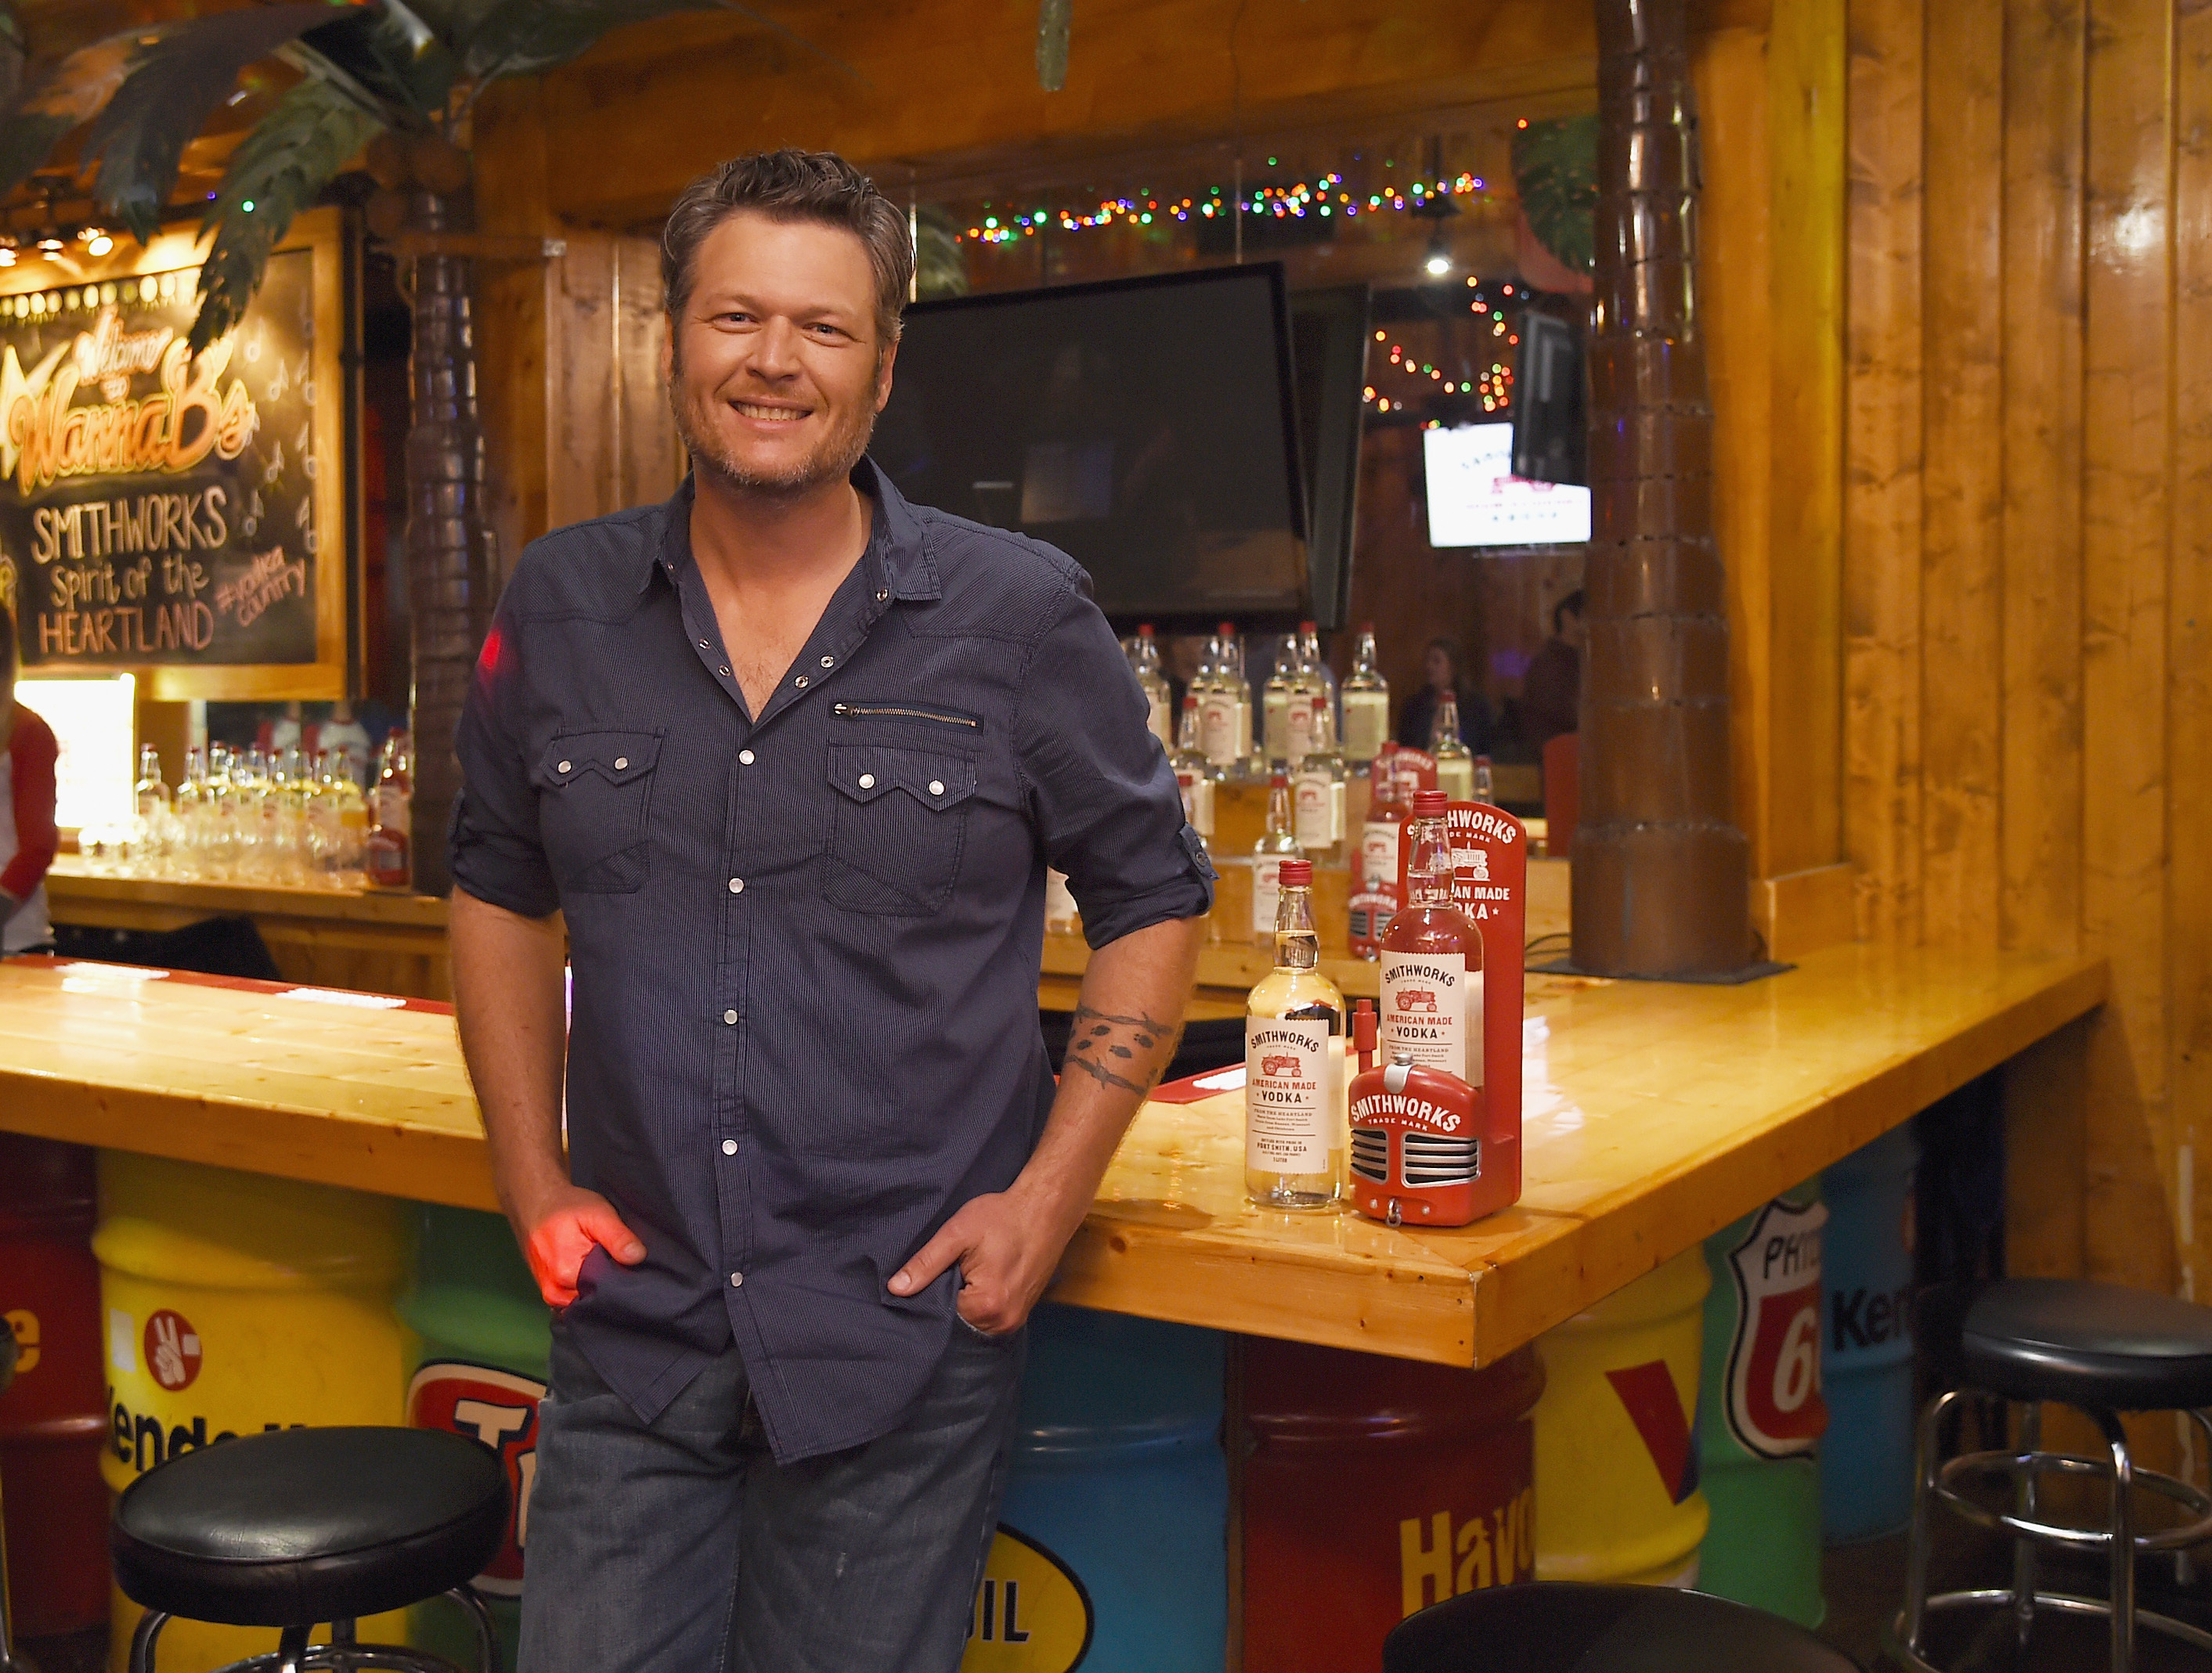 Blake Shelton welcomes Smithworks Vodka to Tennessee during an event in Nashville on June 6, 2017.